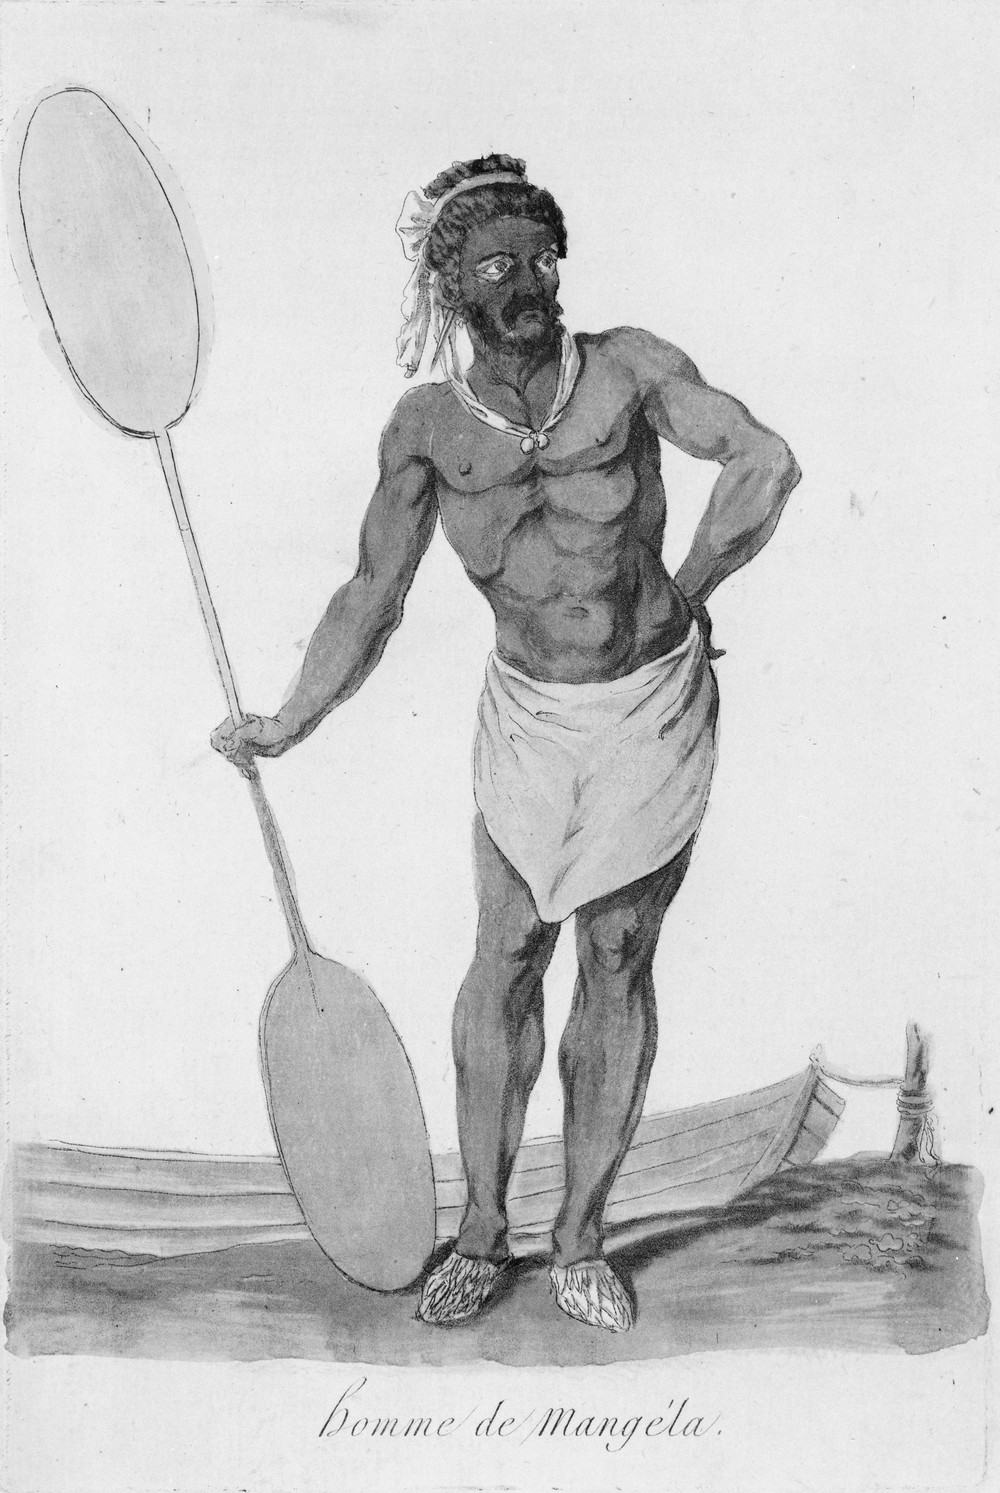 Mangaian Male - 1796 Image Courtesy of Wikipedia